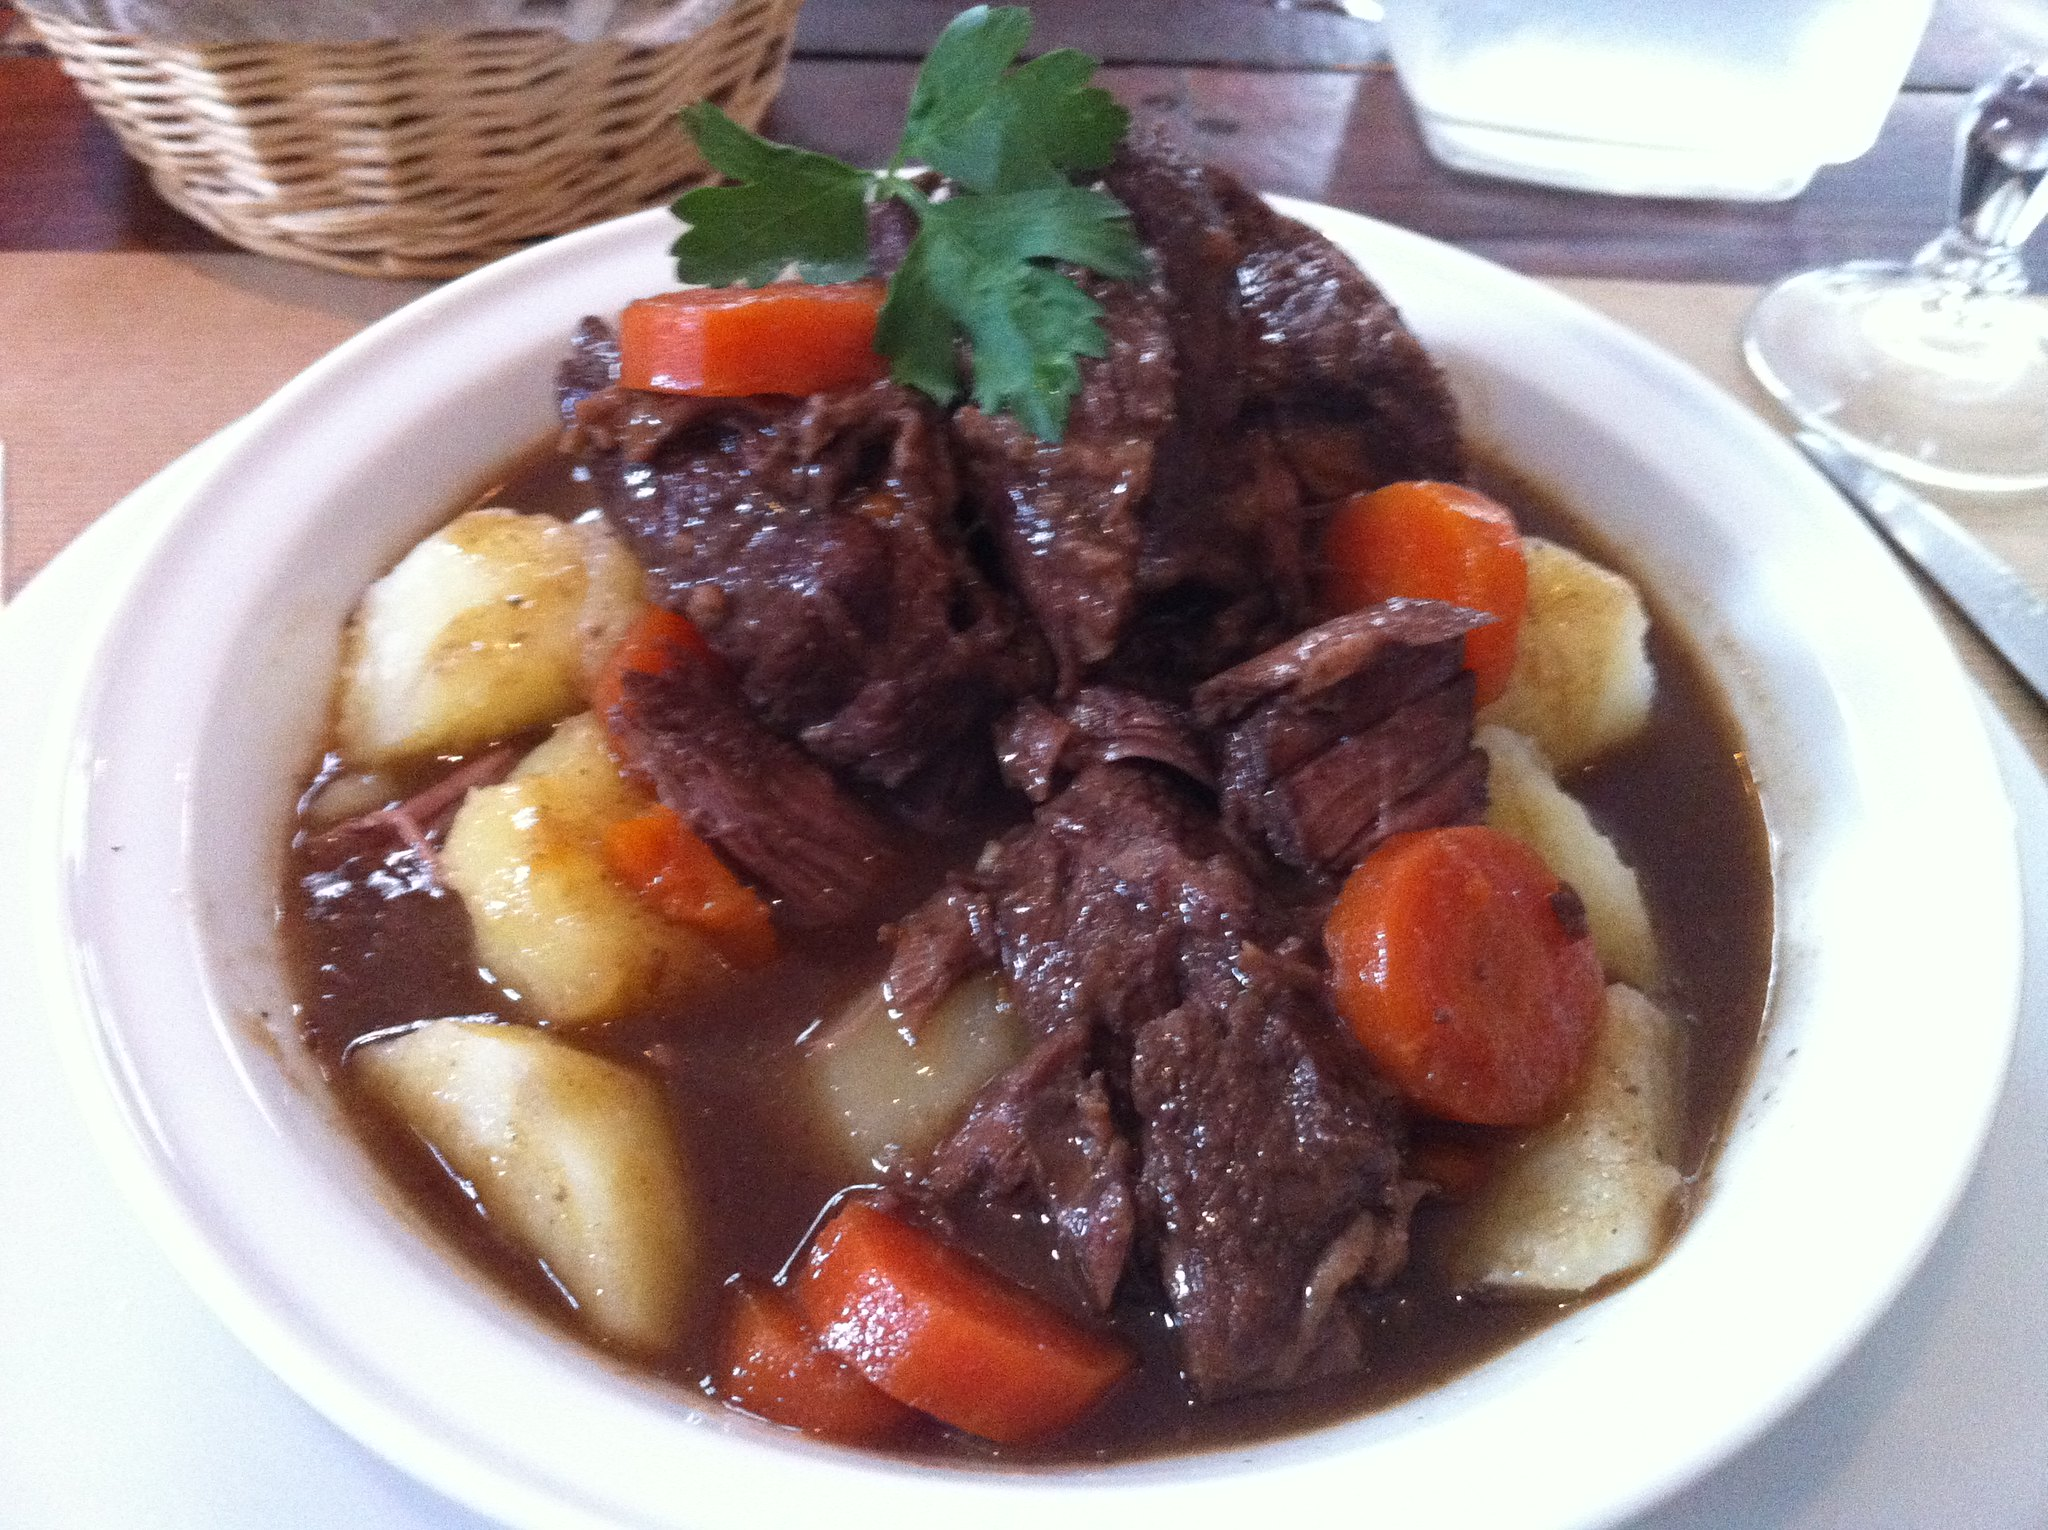 Boeuf Bourguignon - photo by Peter Robinett under CC BY 2.0